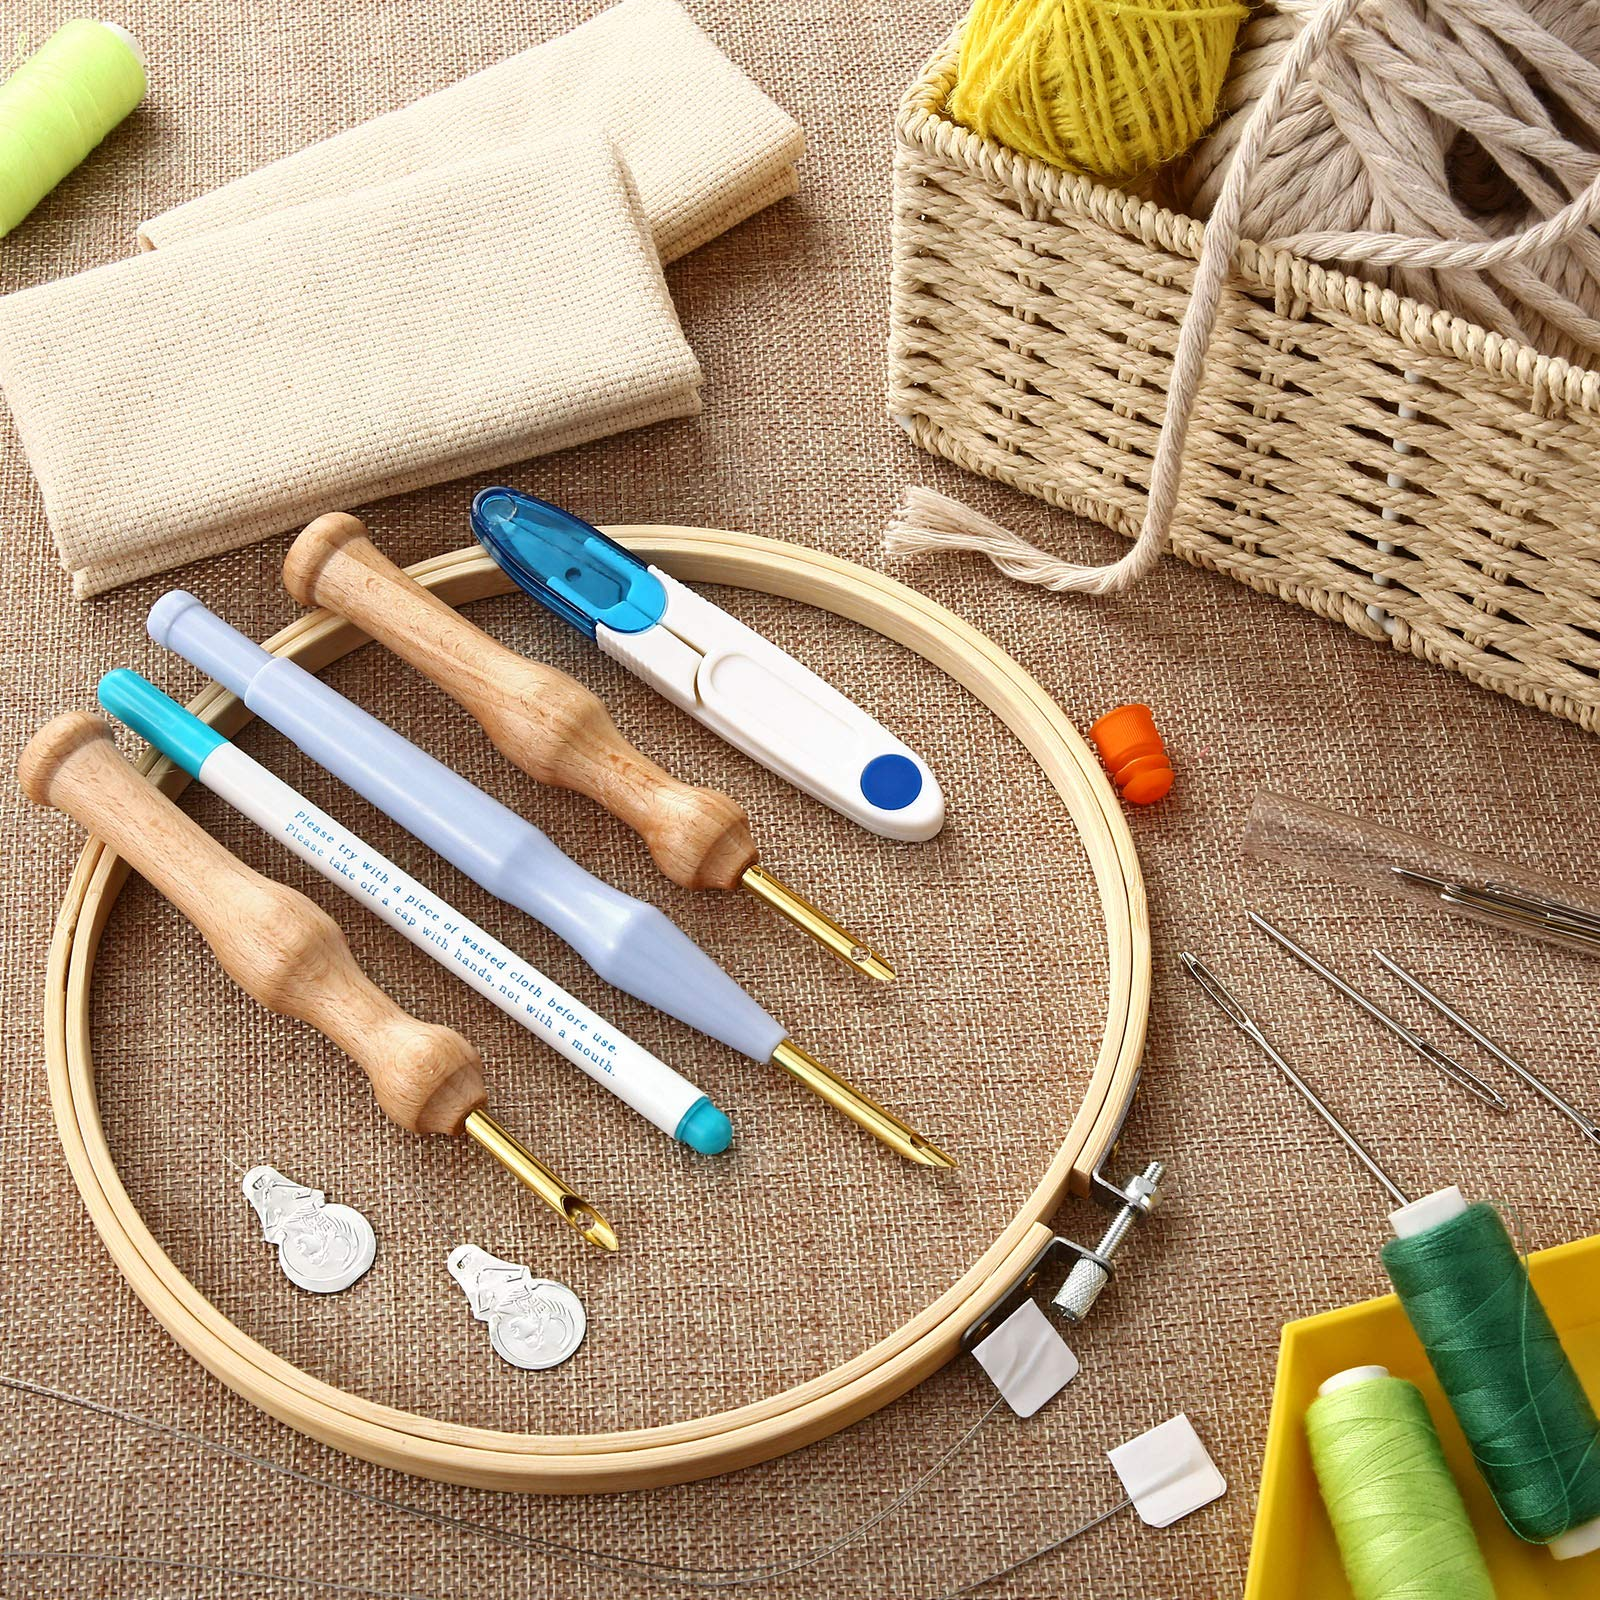 21 Pieces Punch Needle Embroidery Kits Adjustable Embroidery Hoop, Punch Needle, Wooden Handle Embroidery Pen, Punch Needle Cloth, Needle Threader for Embroidery Beginners